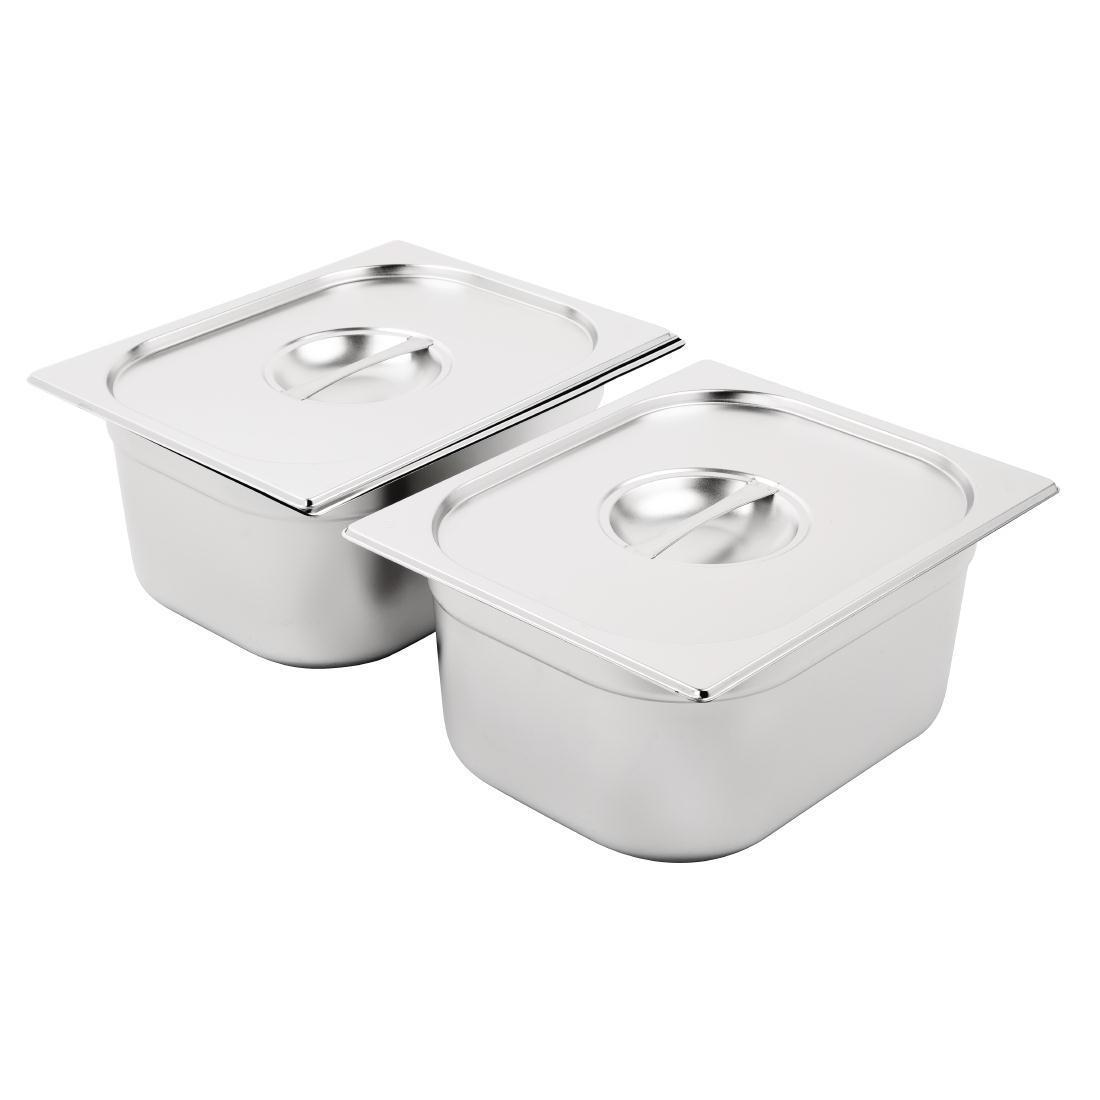 Vogue Stainless Steel Gastronorm Pan Set 2 x 1/2 with Lids - SA245